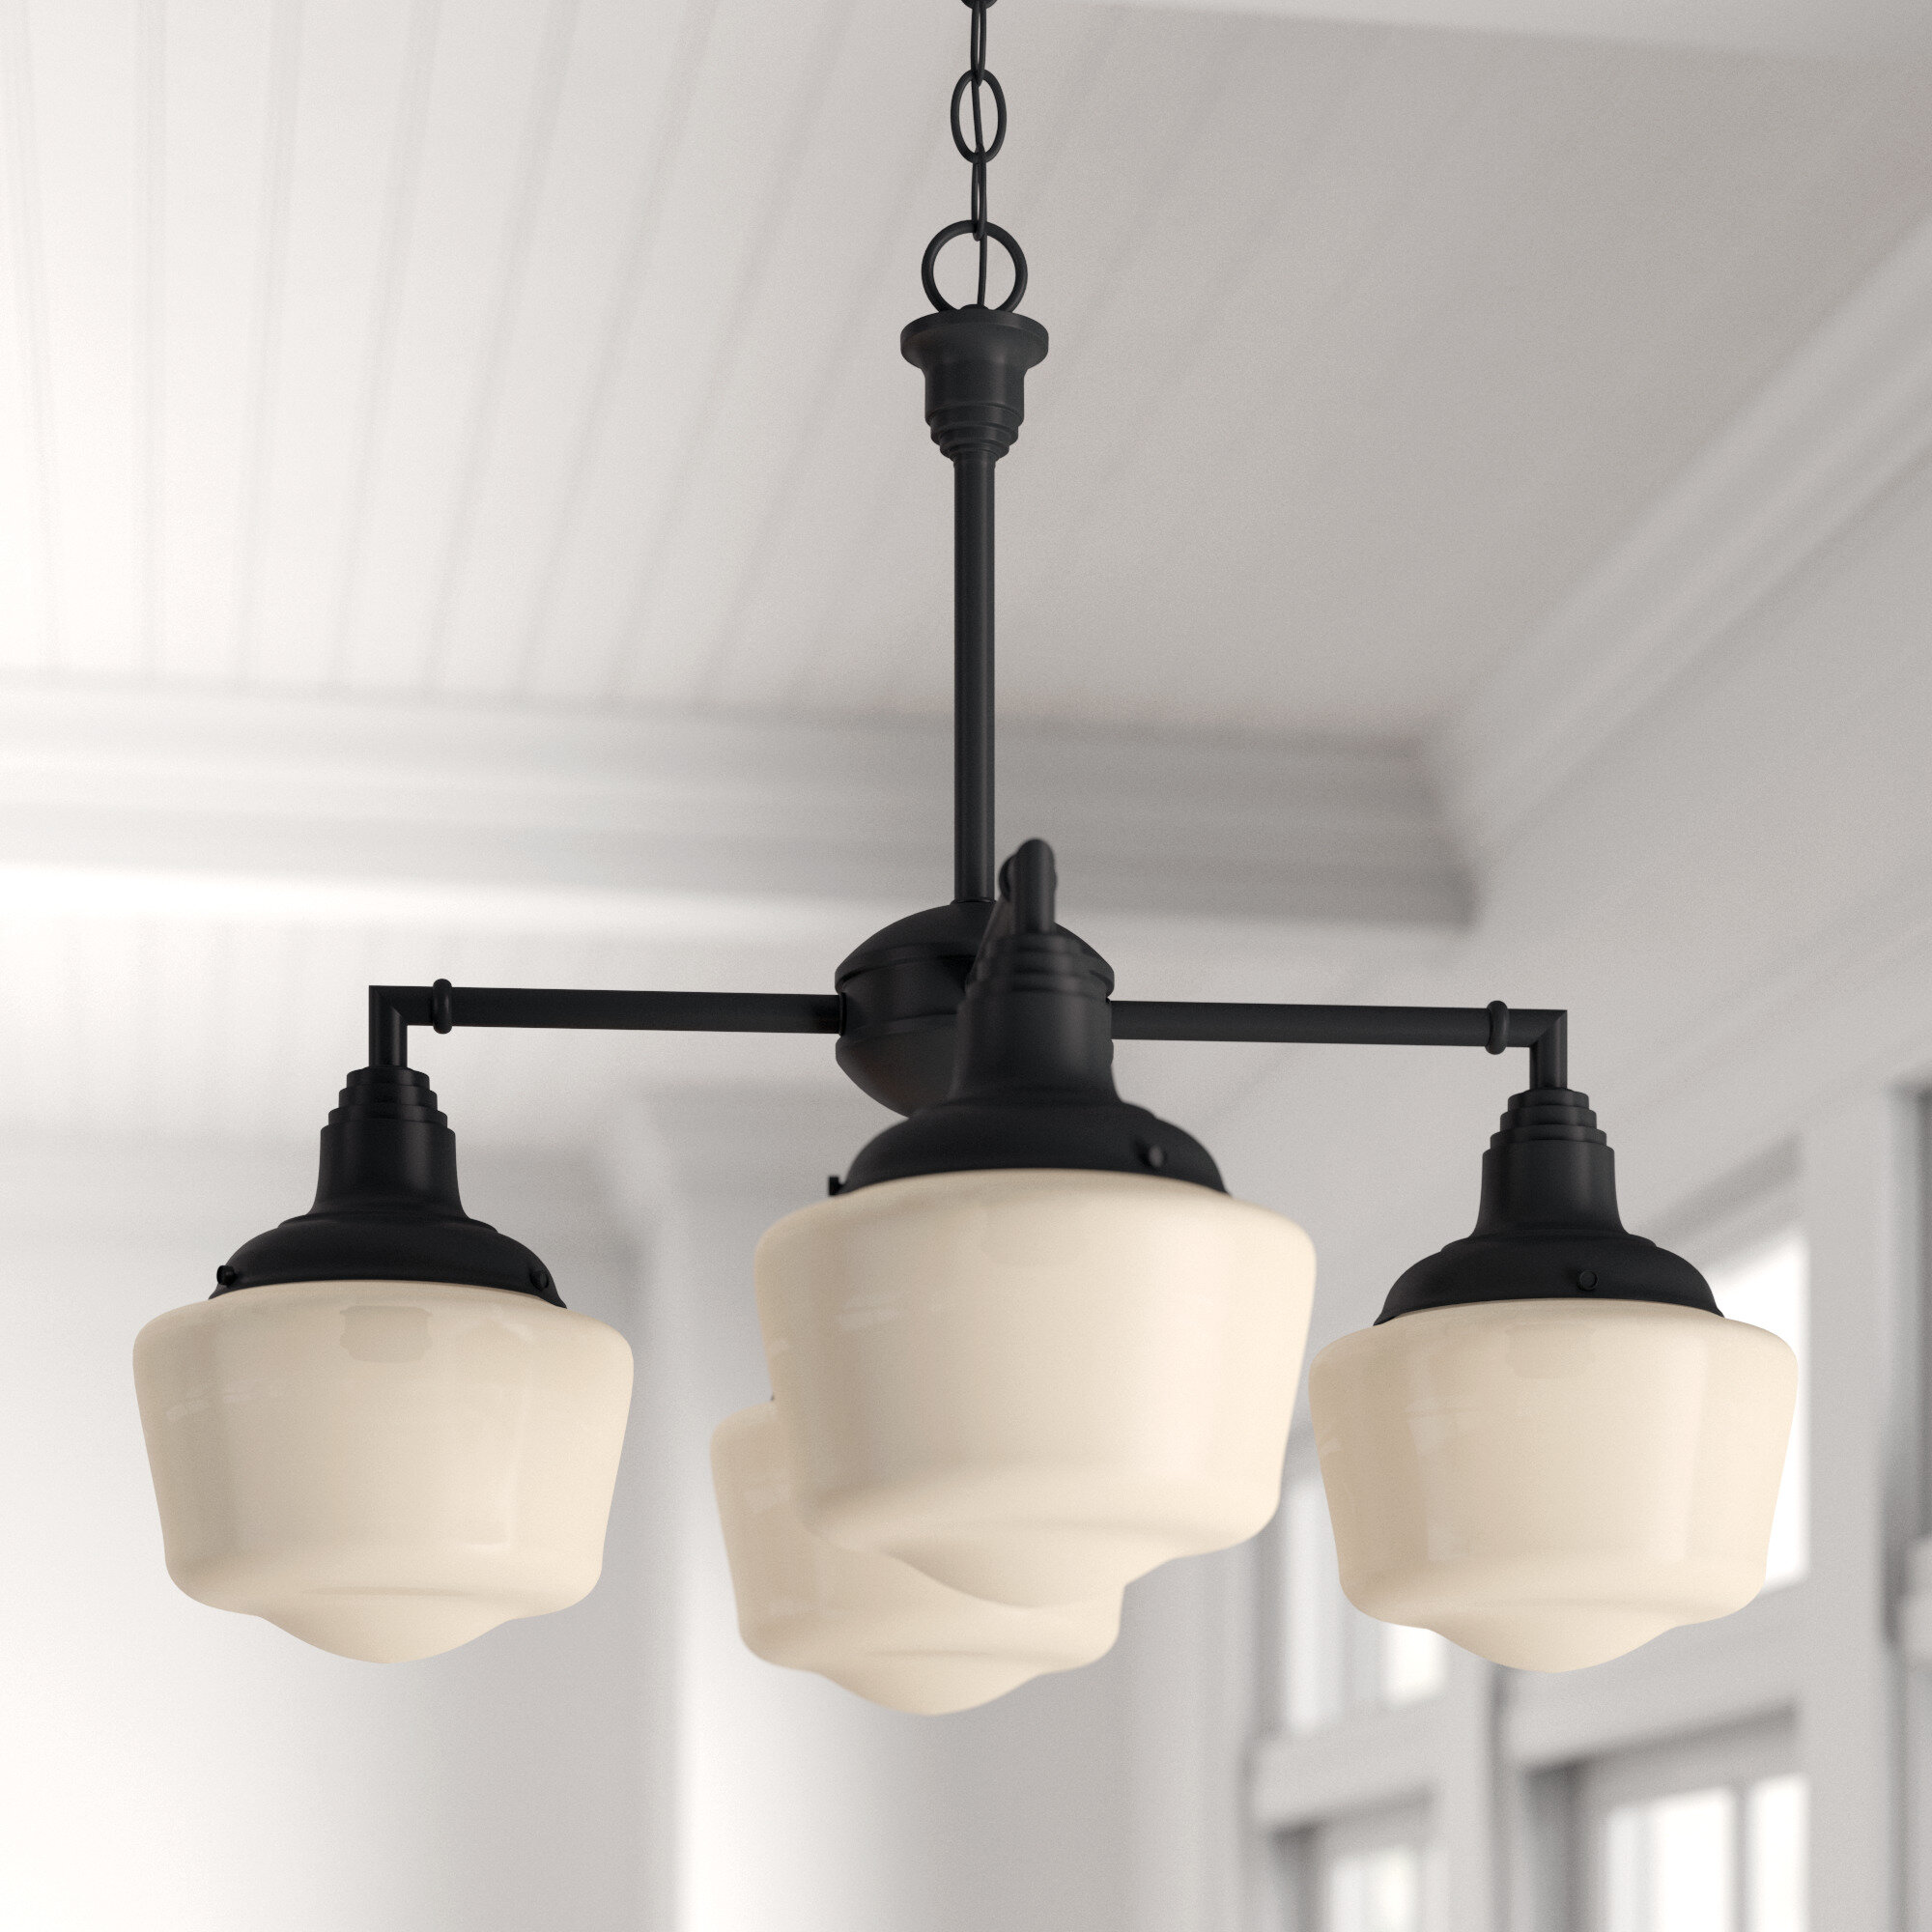 Three Posts Englehart 4 Light Shaded Classic Traditional Chandelier Reviews Wayfair